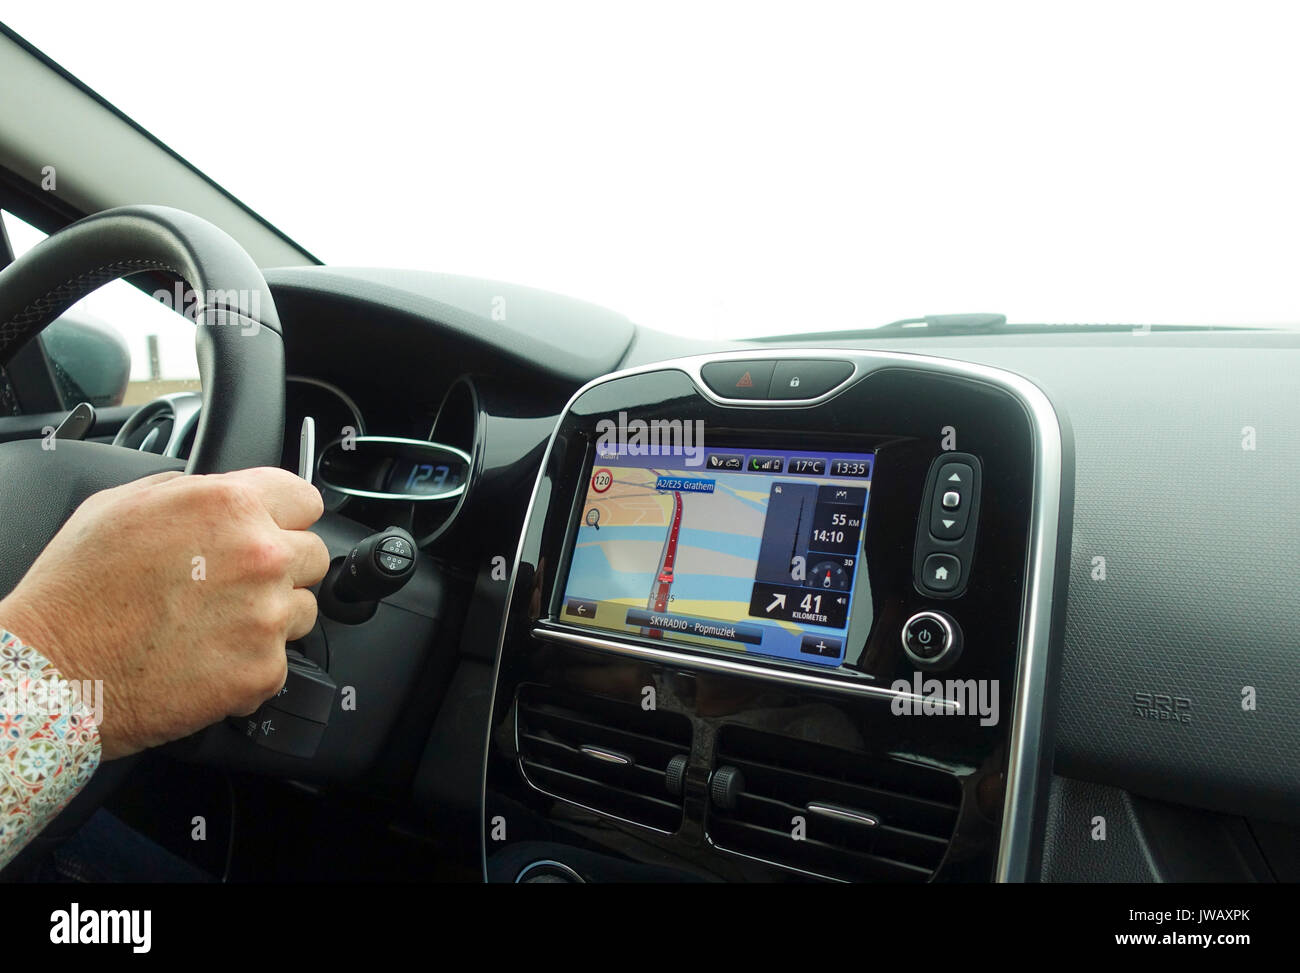 Car navigation system build in interior of modern european car with GPS system on. Netherlands. Stock Photo